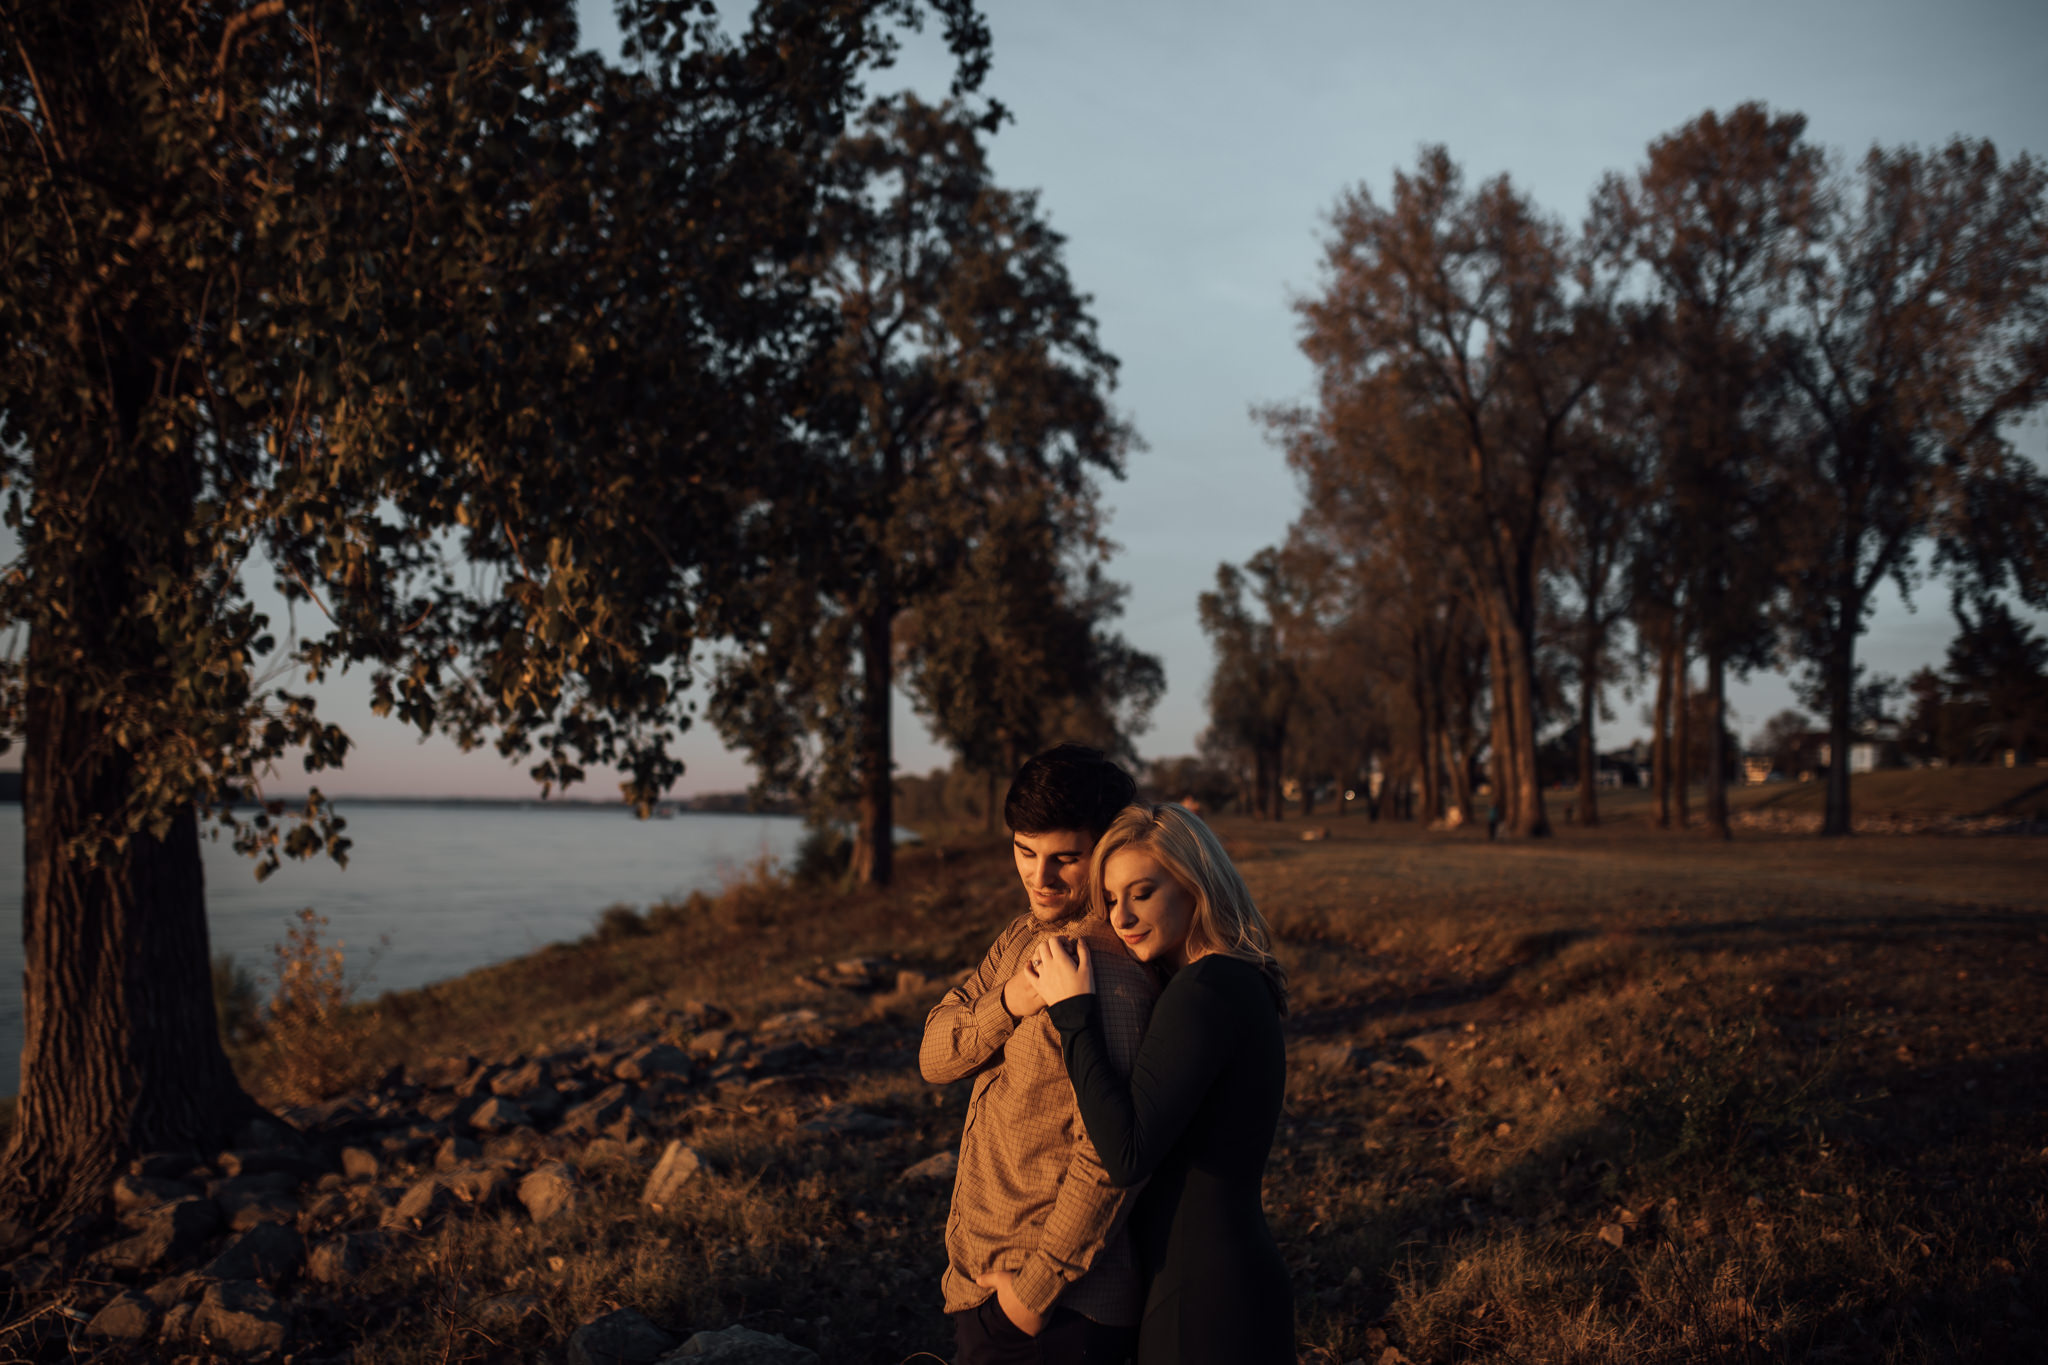 memphis-wedding-photographer-cassie-cook-photography-cafe-keough-engagement-photoshoot-coffee-engagement-37.jpg